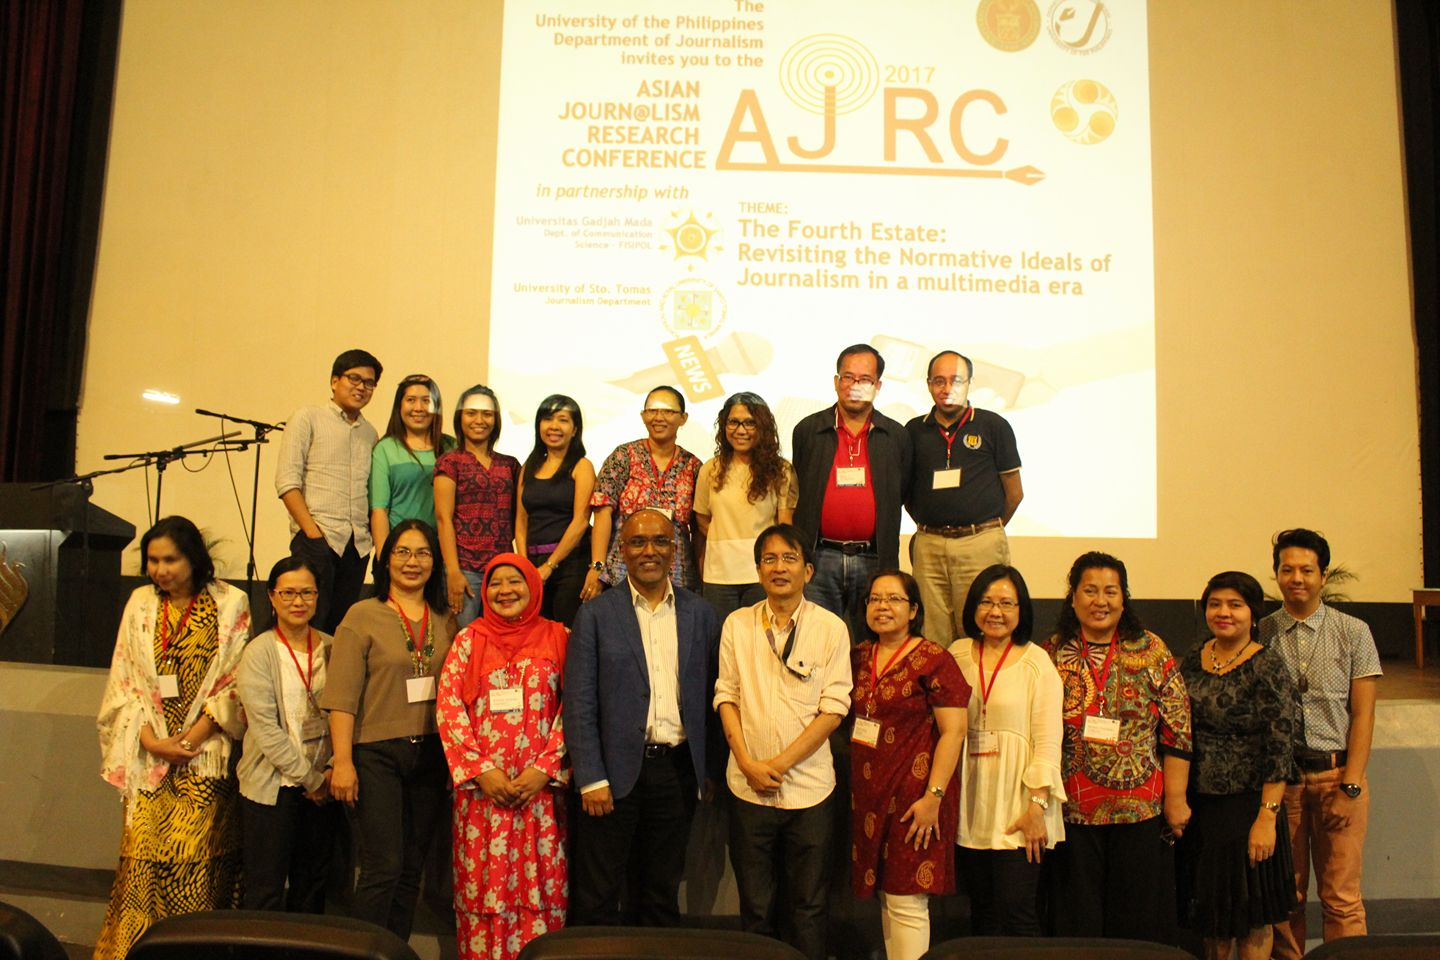 Keynote speakers and Filipino organizers led by the journalism department from the University of the Philippines-Diliman and the University of Sto. Tomas pose for a souvenir photo with international faculty